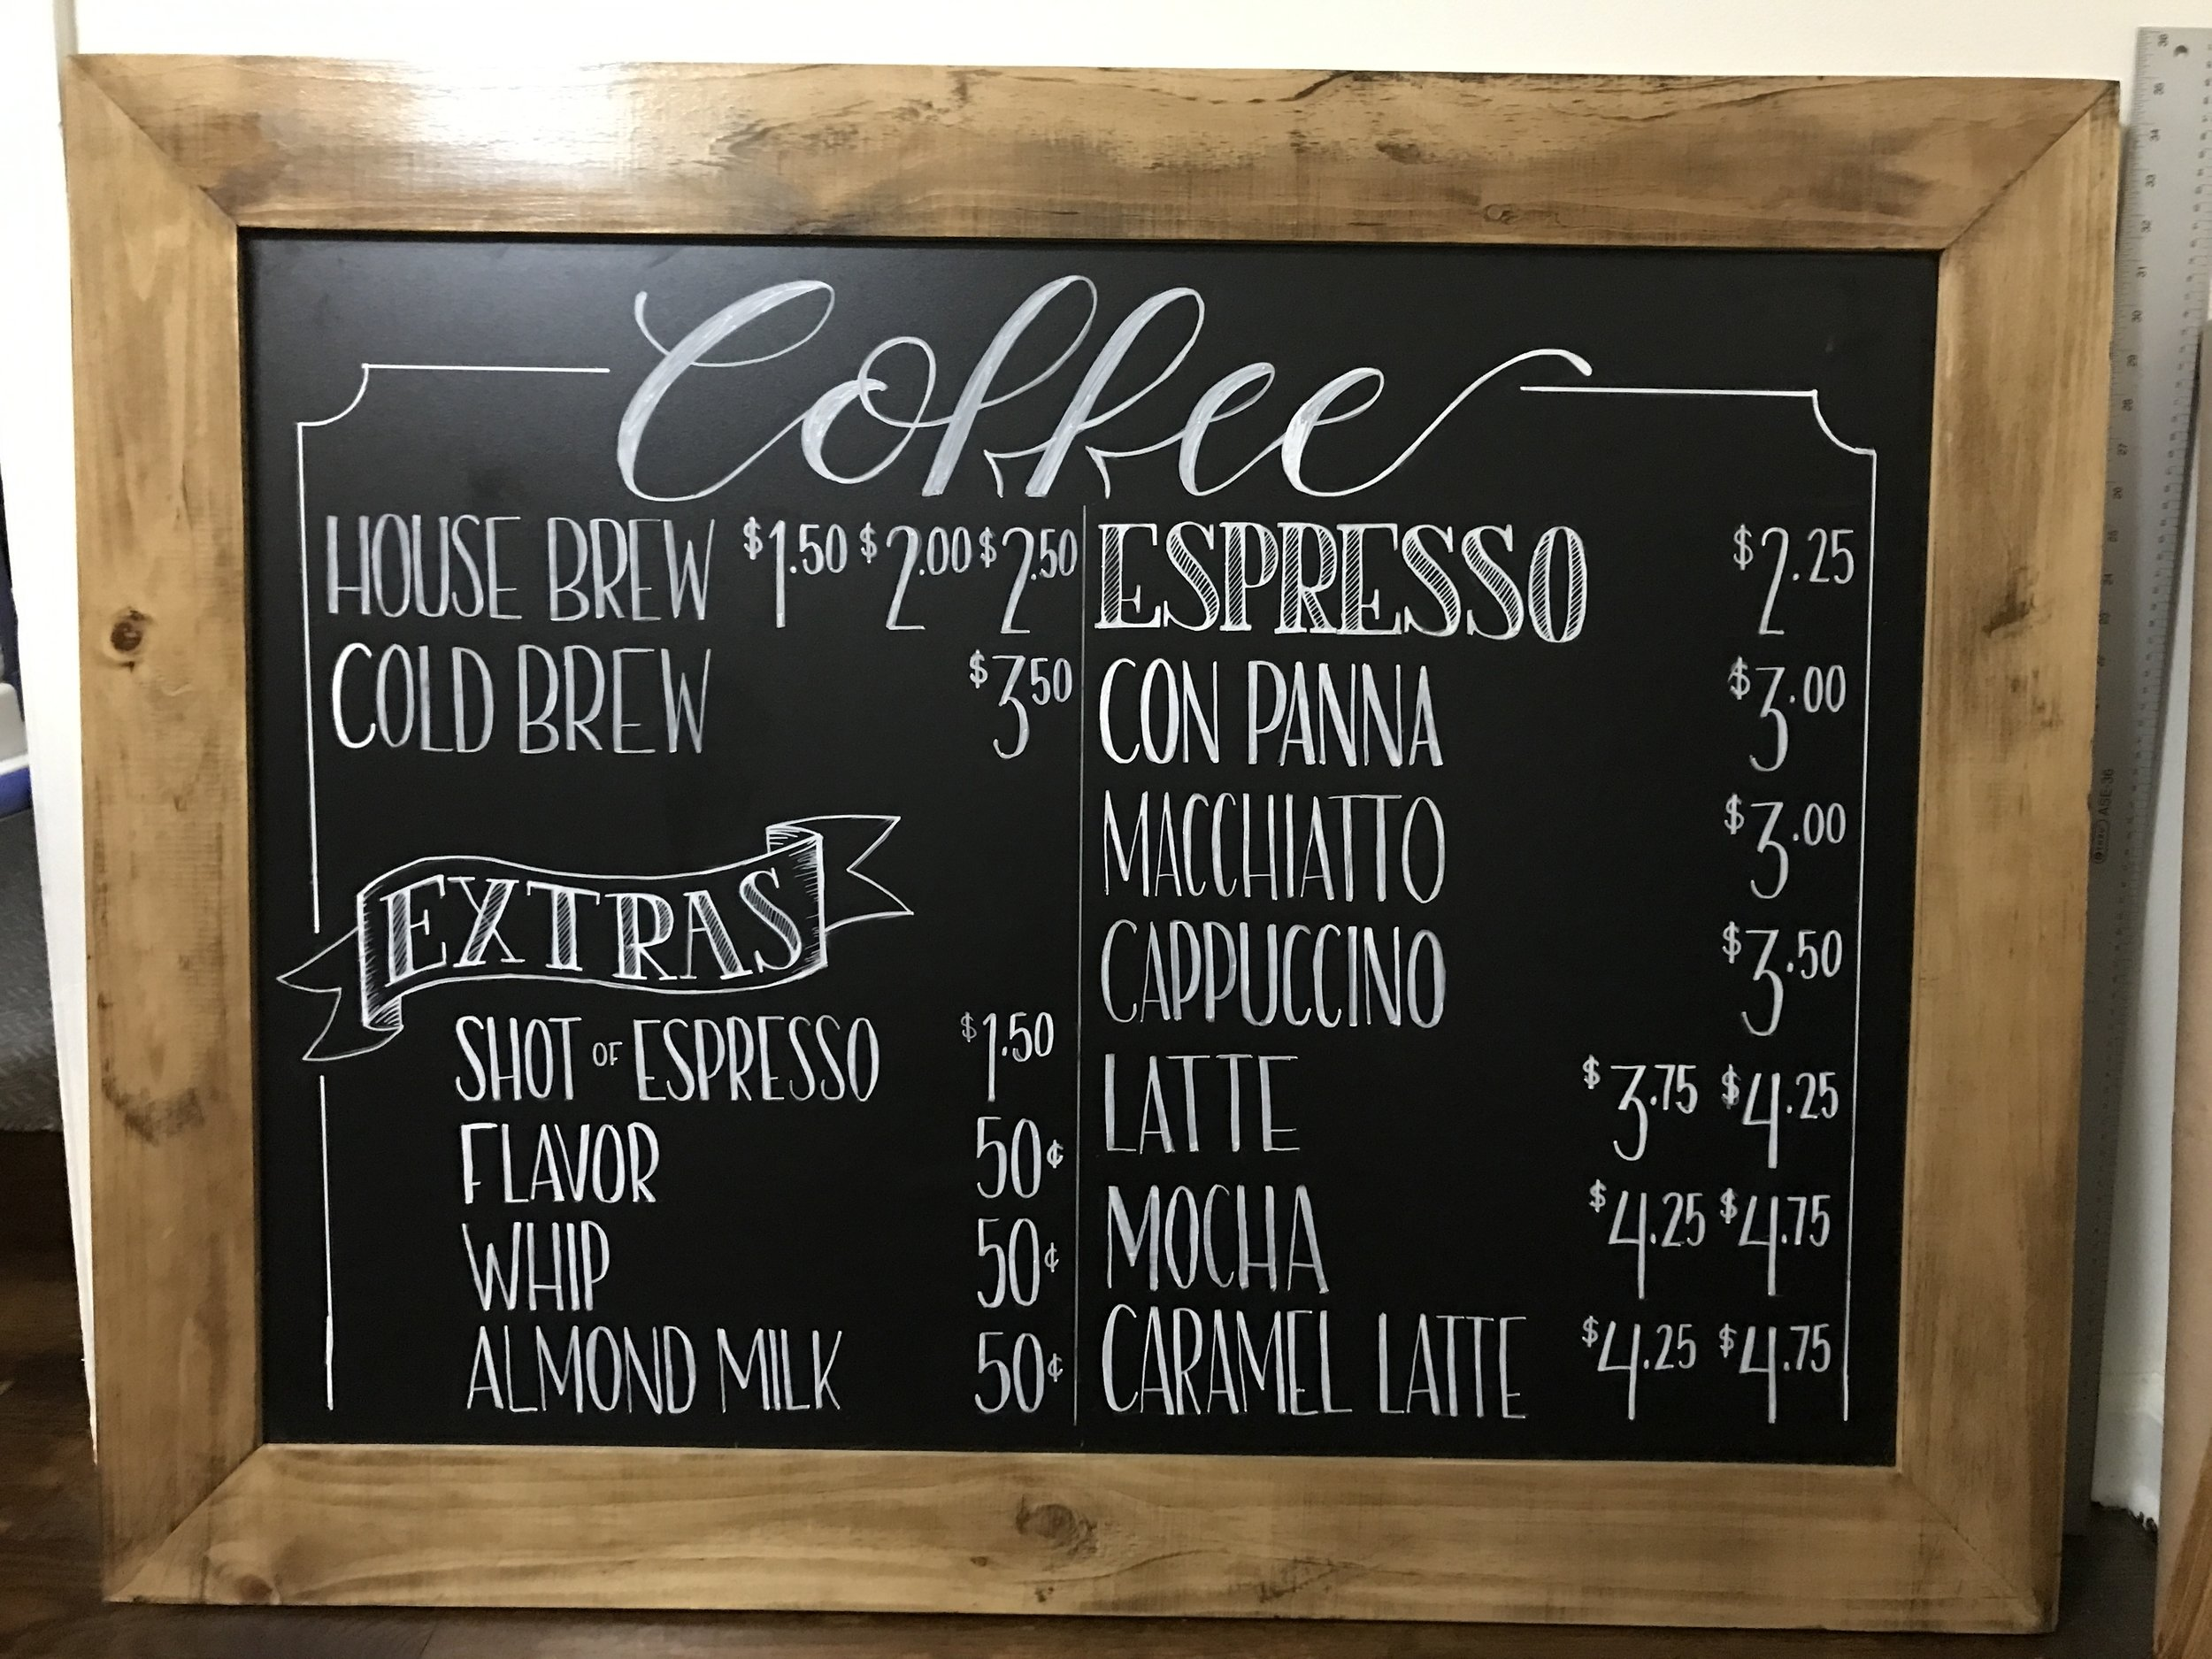 2offee Menu1.jpeg